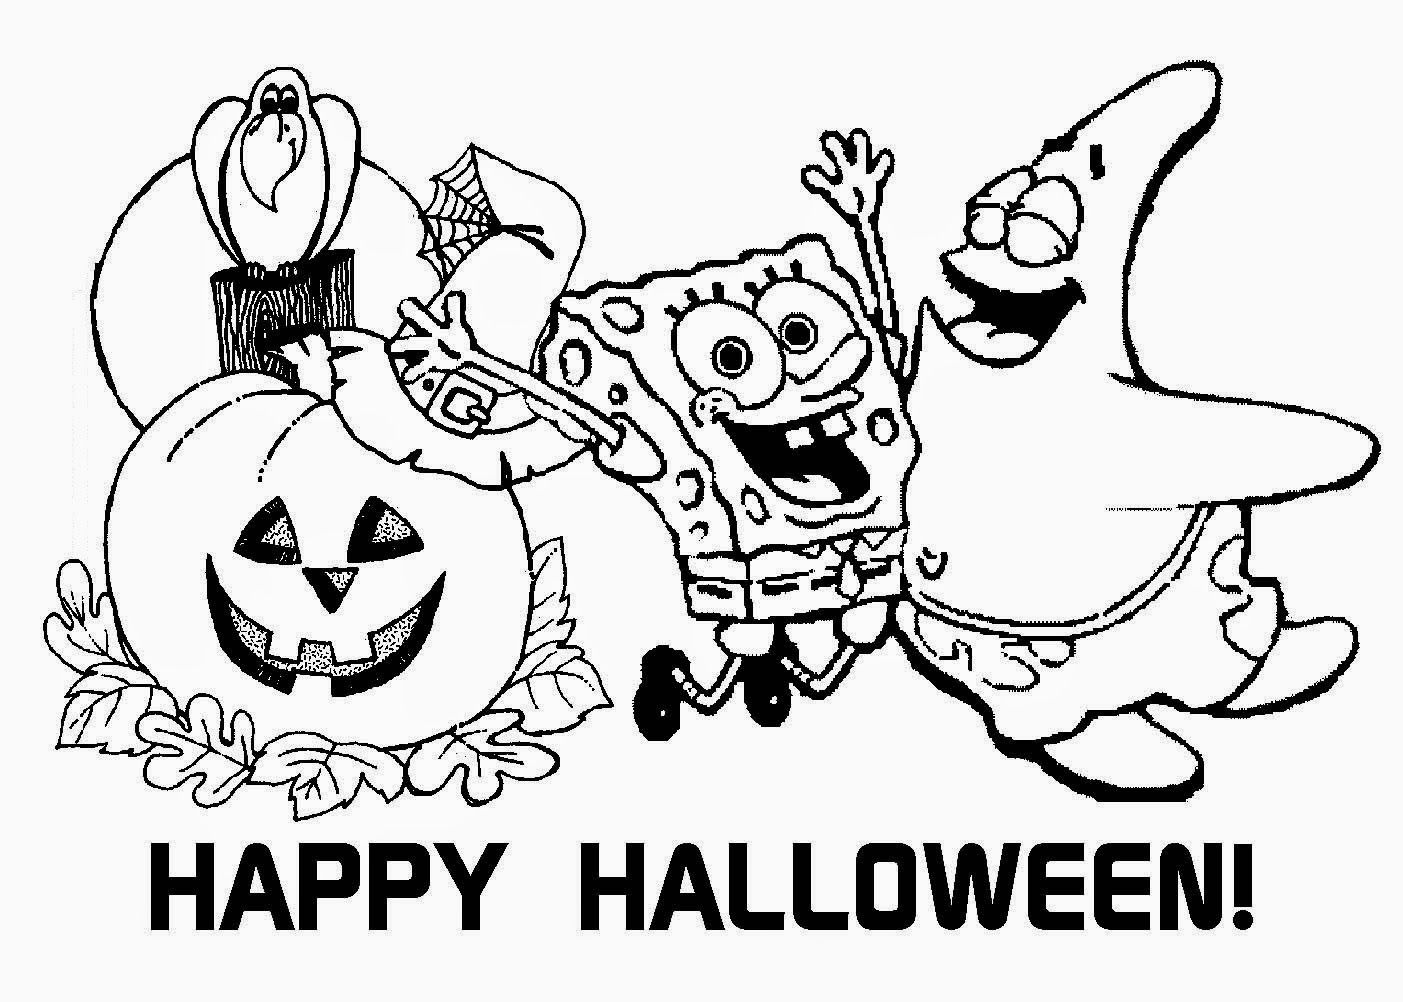 Coloring Pages Printable Disney Halloween Coloring Pages free printable disney halloween coloring pages az frankenstein games coloring